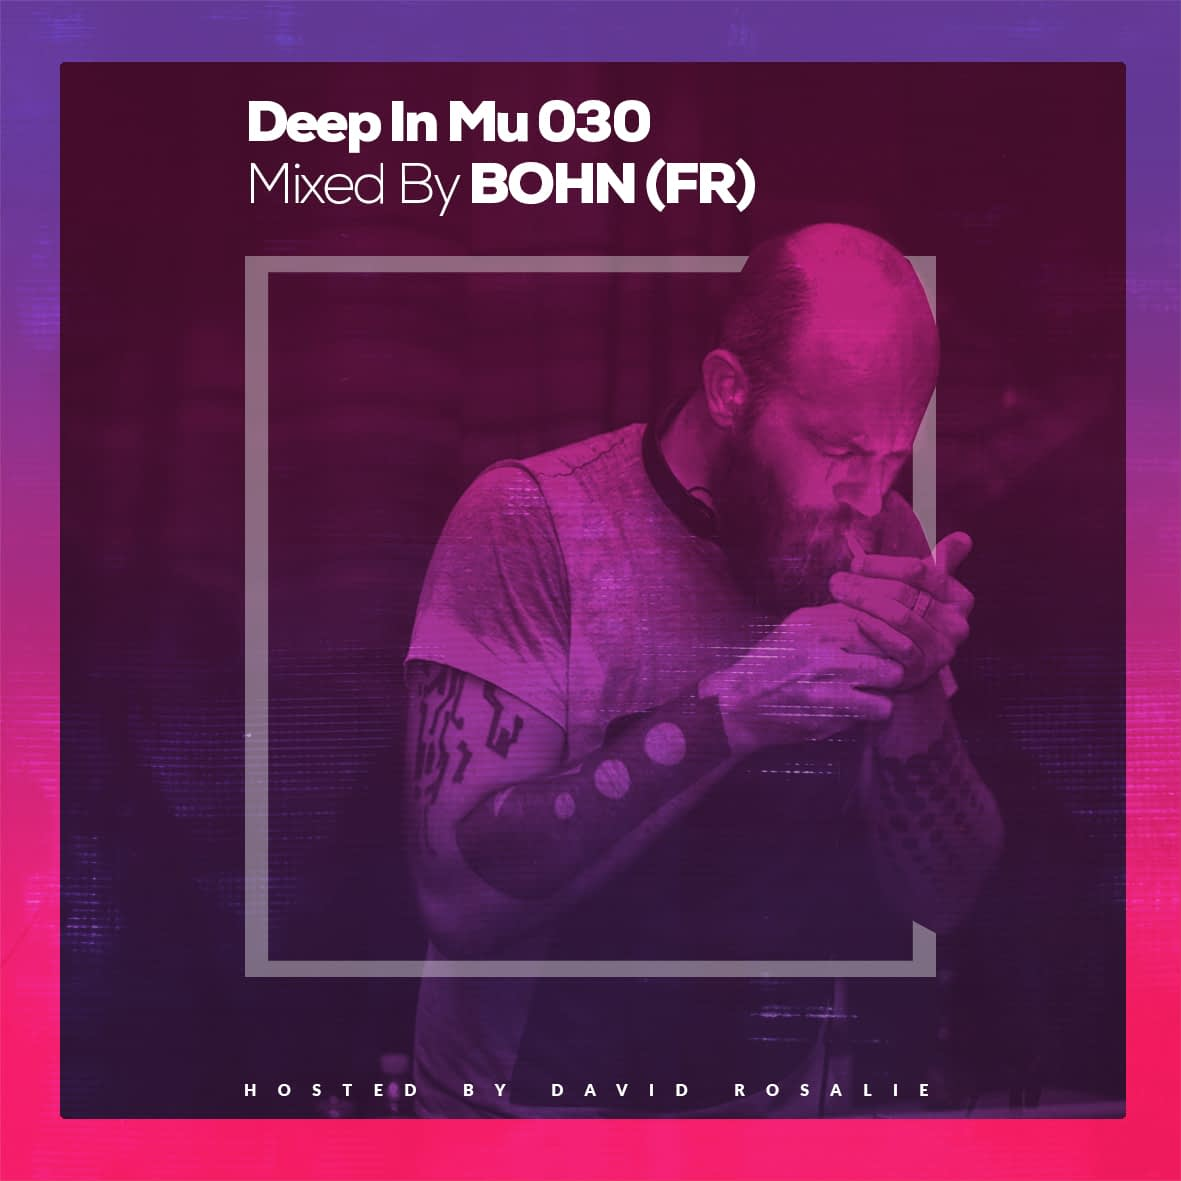 Deep In Mu 030 Mixed By Bohn (FR)